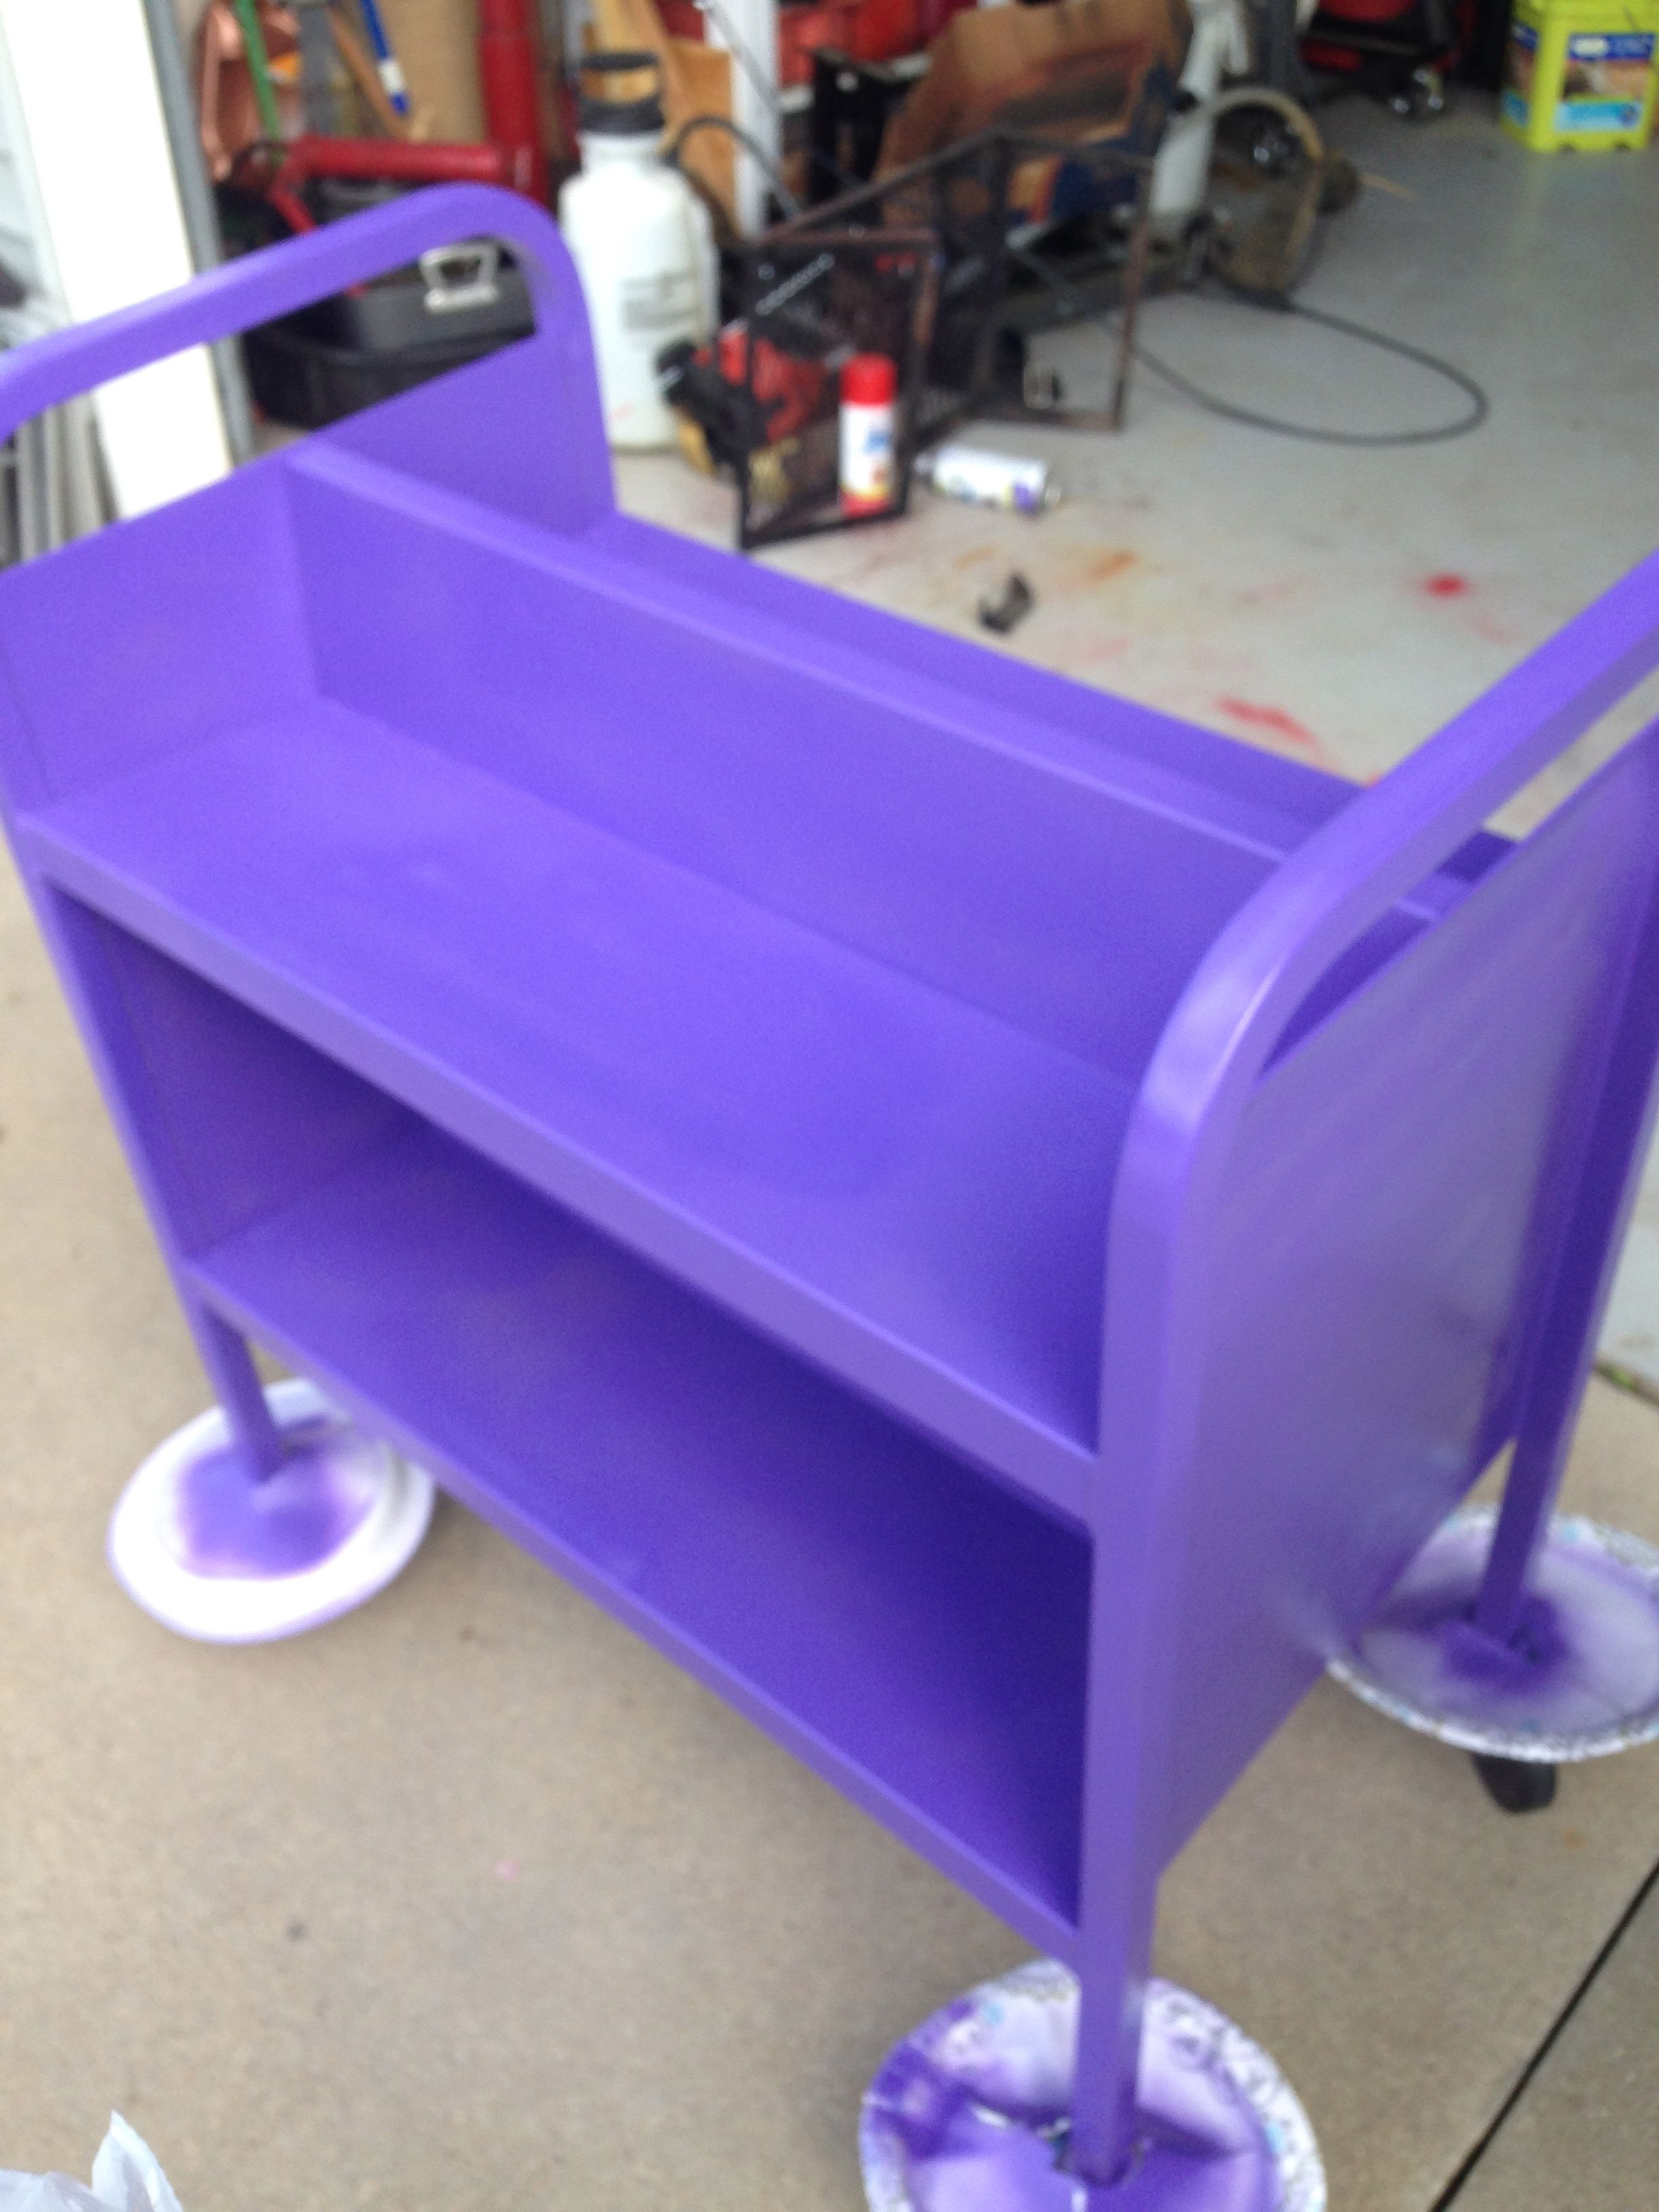 Freshen up the old book carts with donated fun spray paint